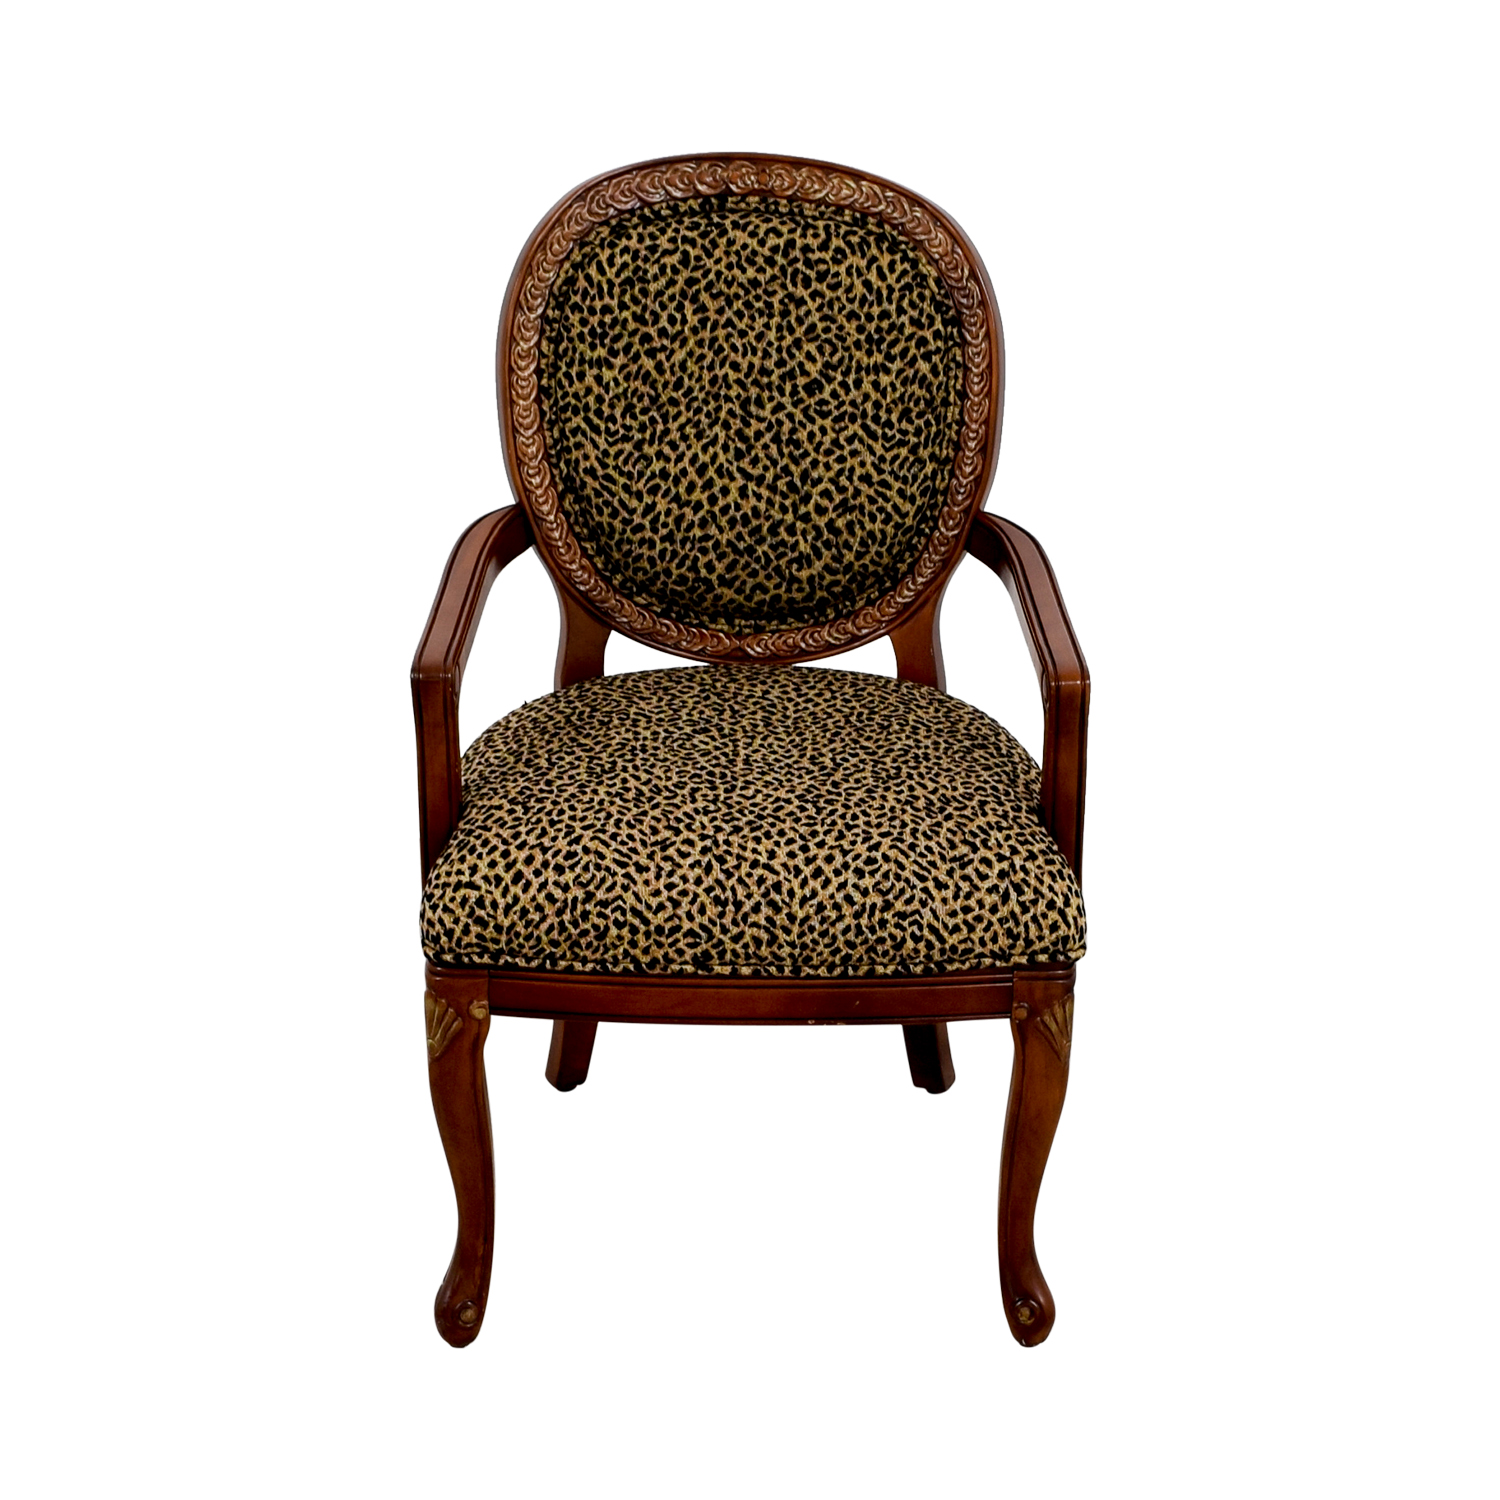 upholstered chairs with wooden arms hanging birdcage chair 63 off leopard wood arm